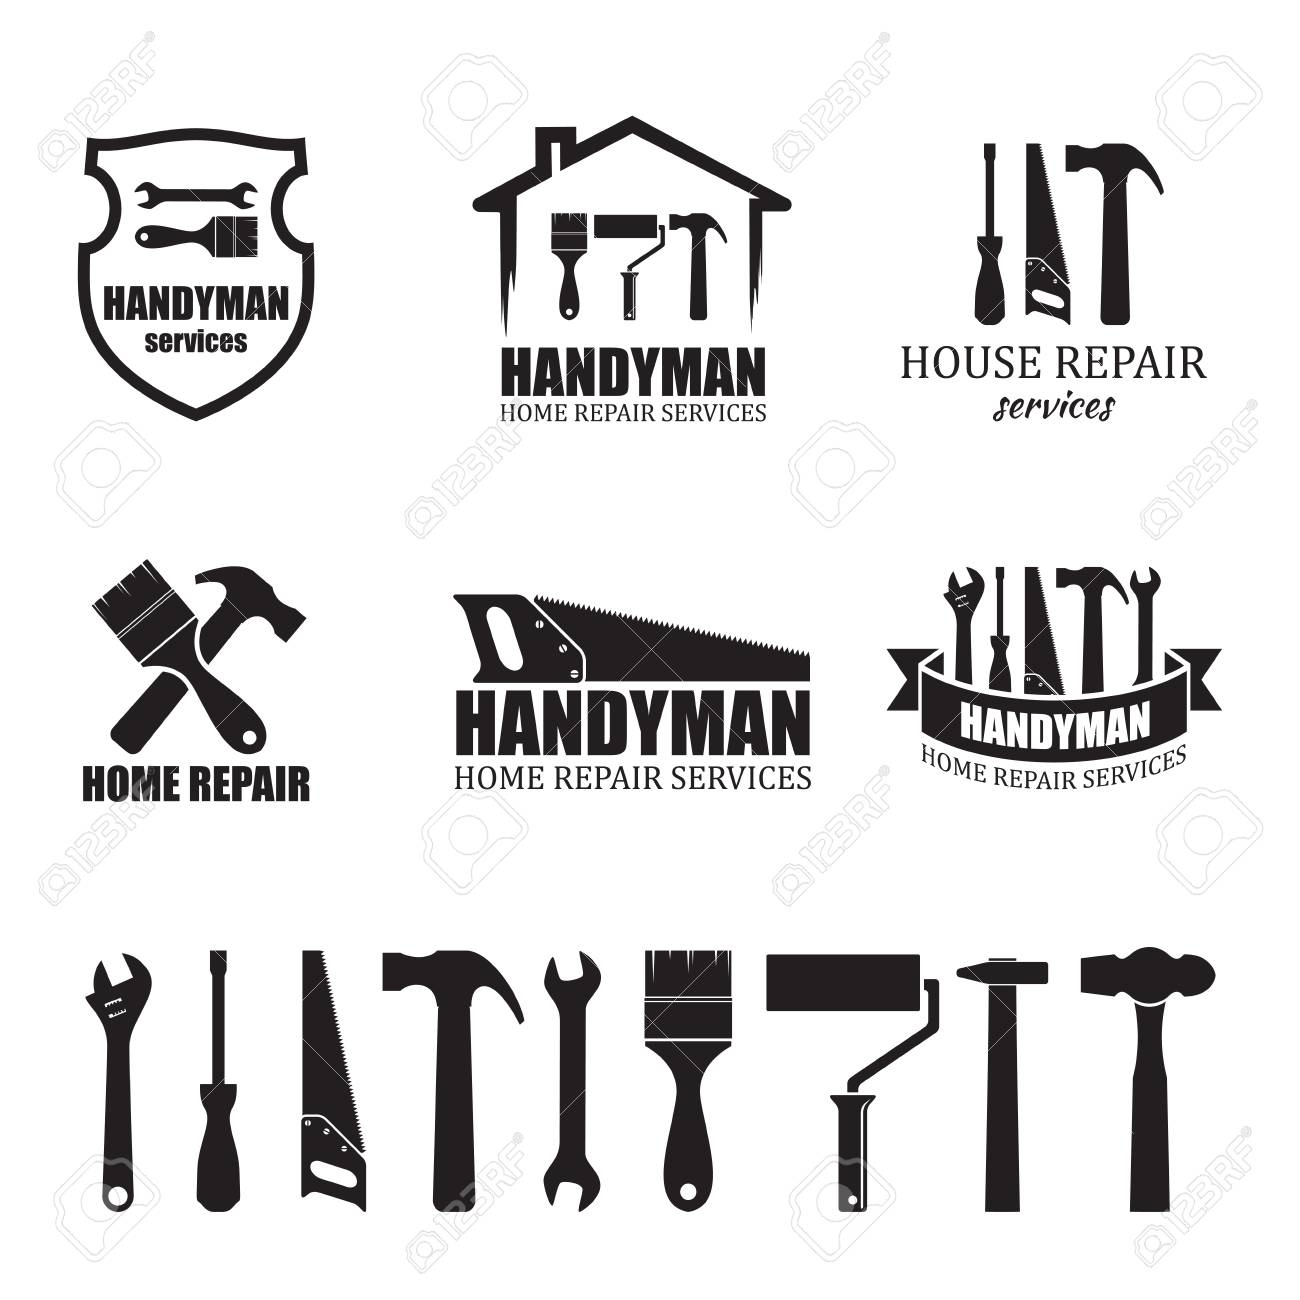 Set Of Different Handyman Services Icons Isolated On White Background Royalty Free Cliparts Vectors And Stock Illustration Image 103863878